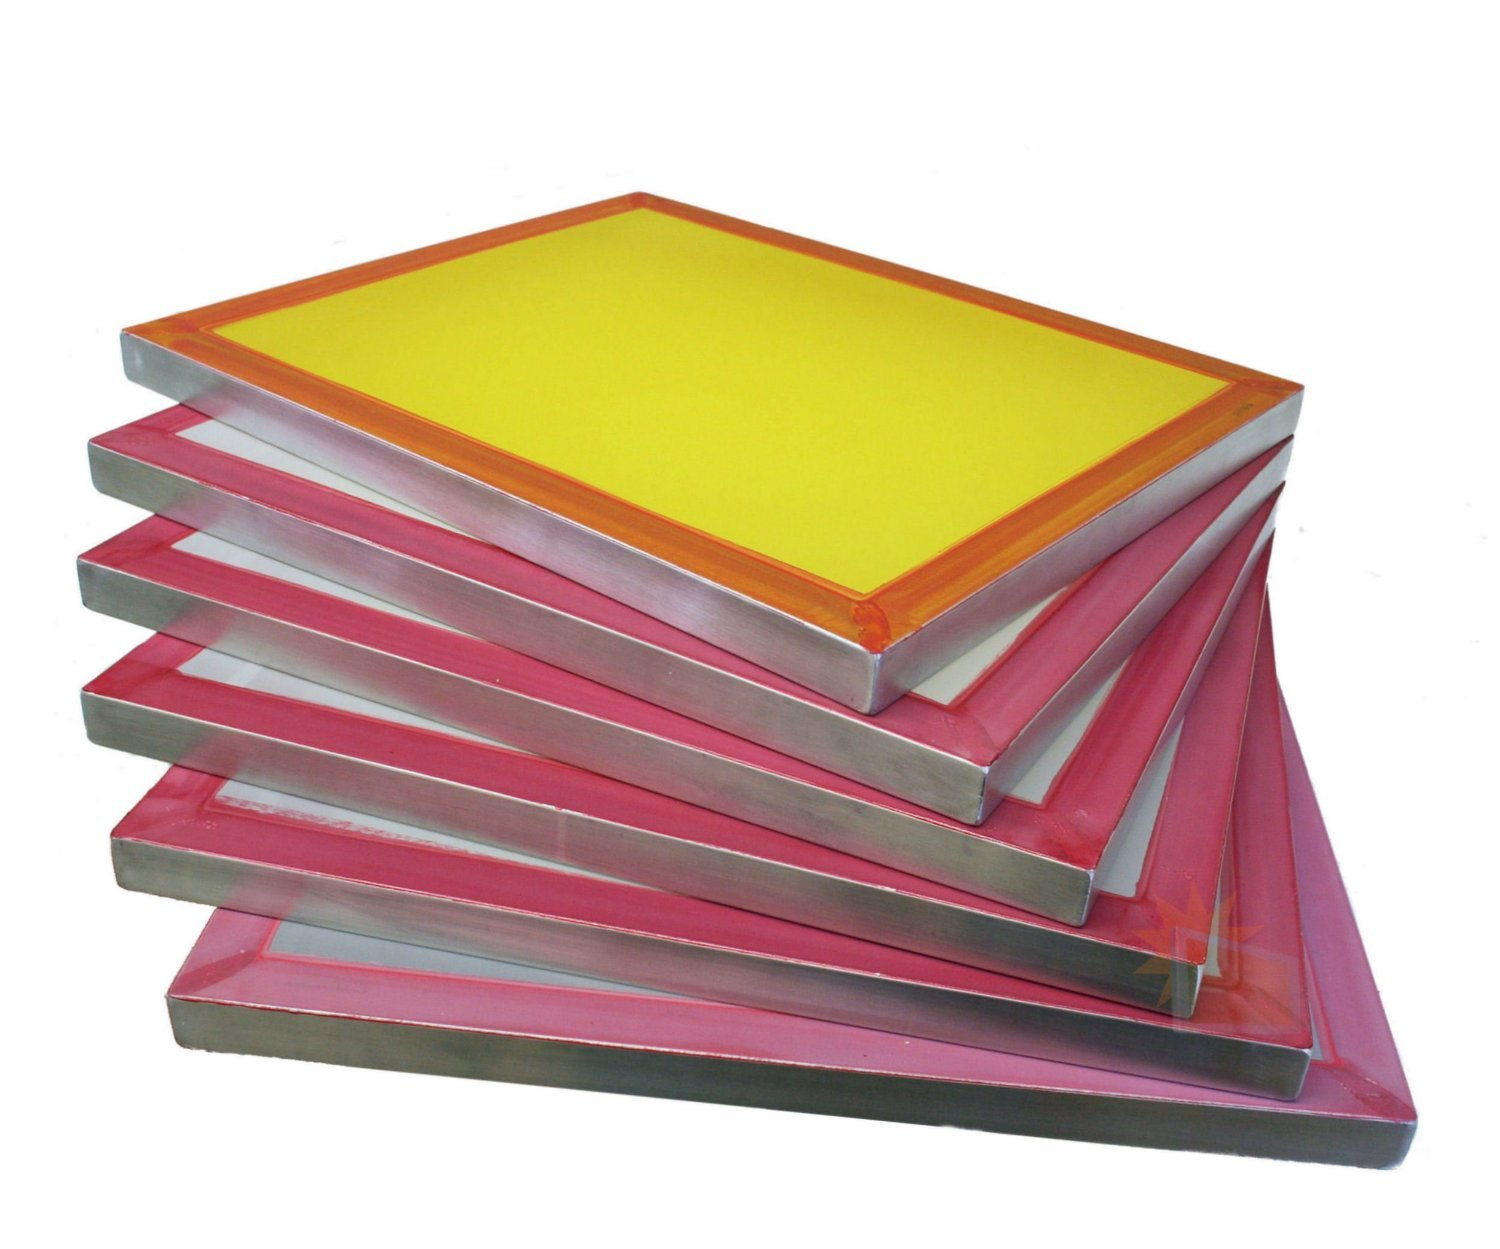 Screen Printing Frames, 6-pack 18''x20'' Pre-stretched with 196 tpi Yellow Silkscreen Mesh, by MSJ Screens